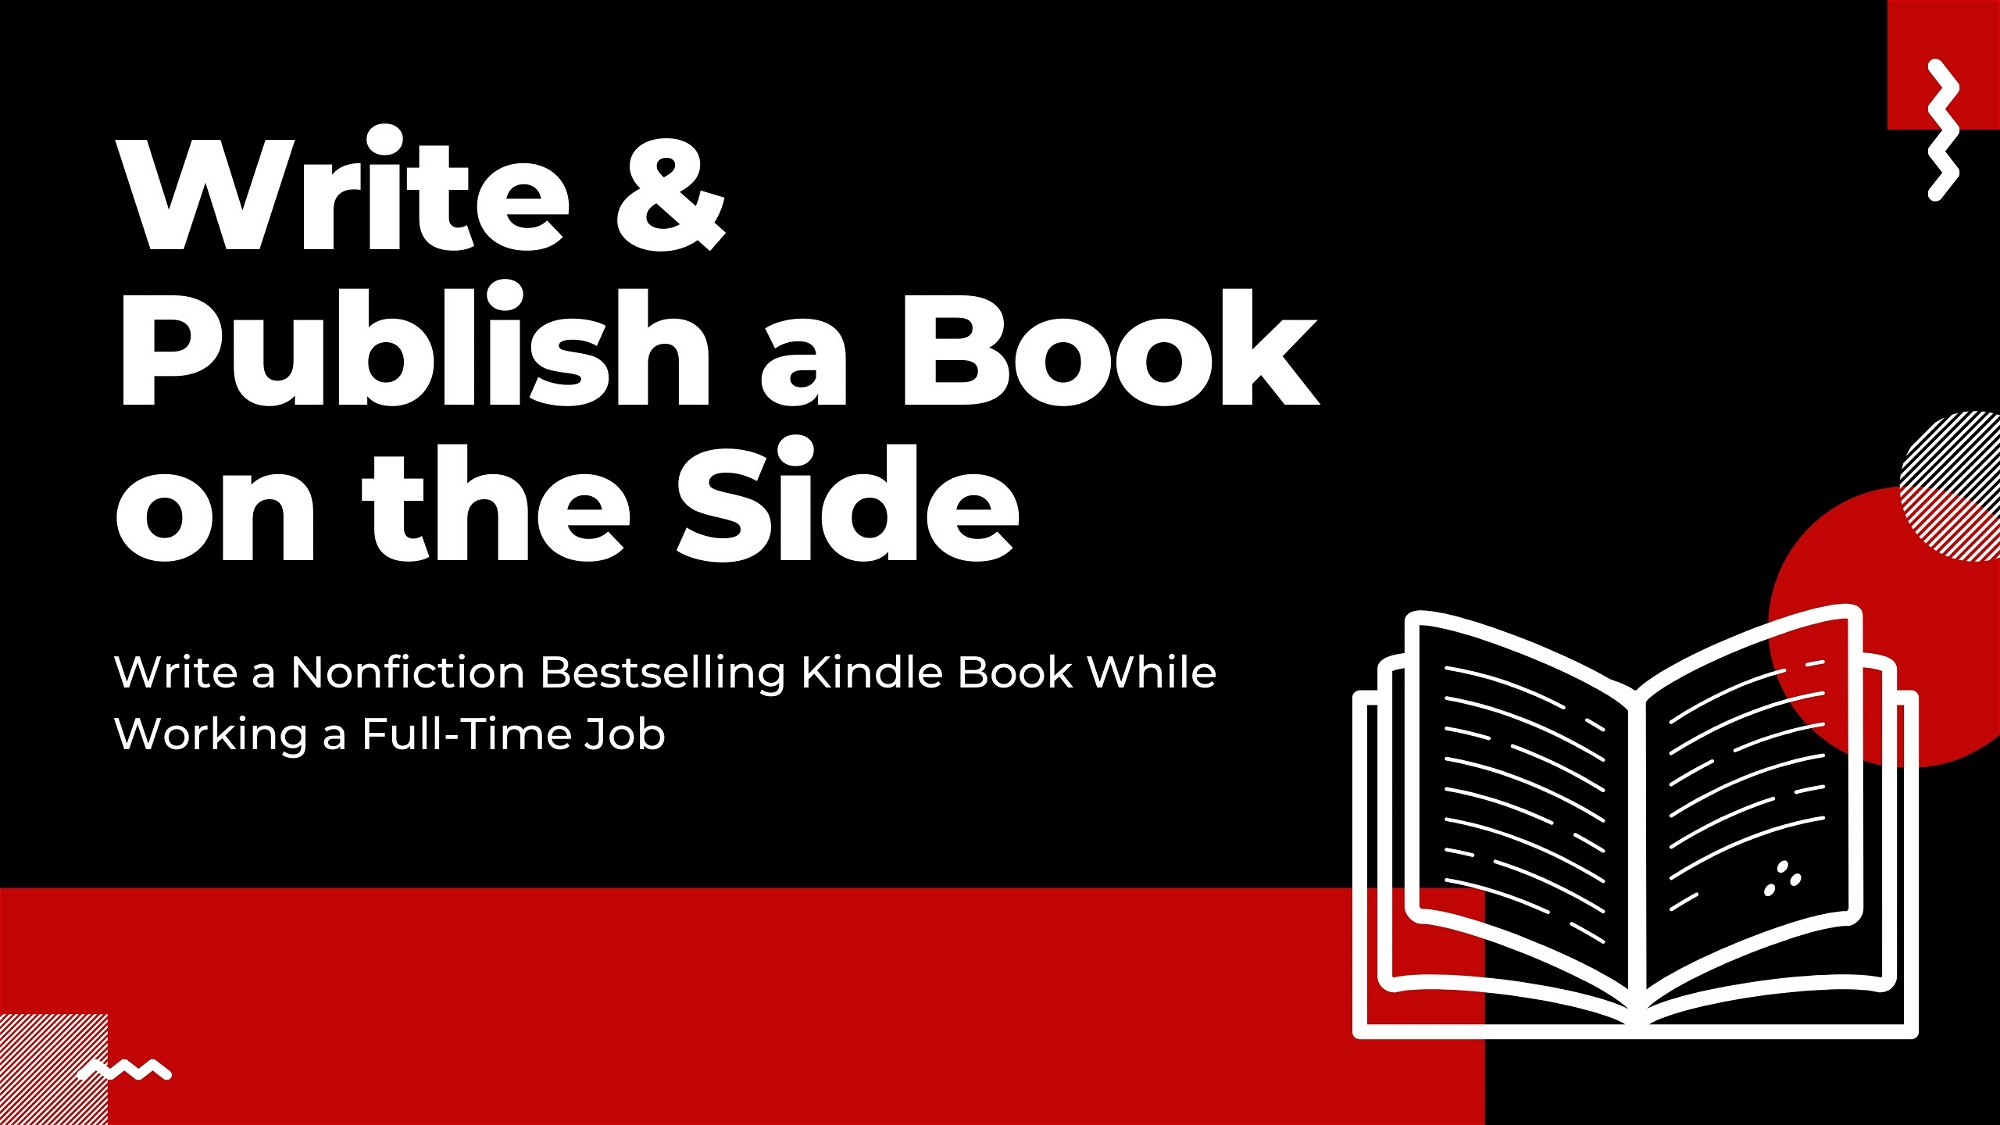 AppSumo Deal for Write & Publish a Book on the Side [Short Course]